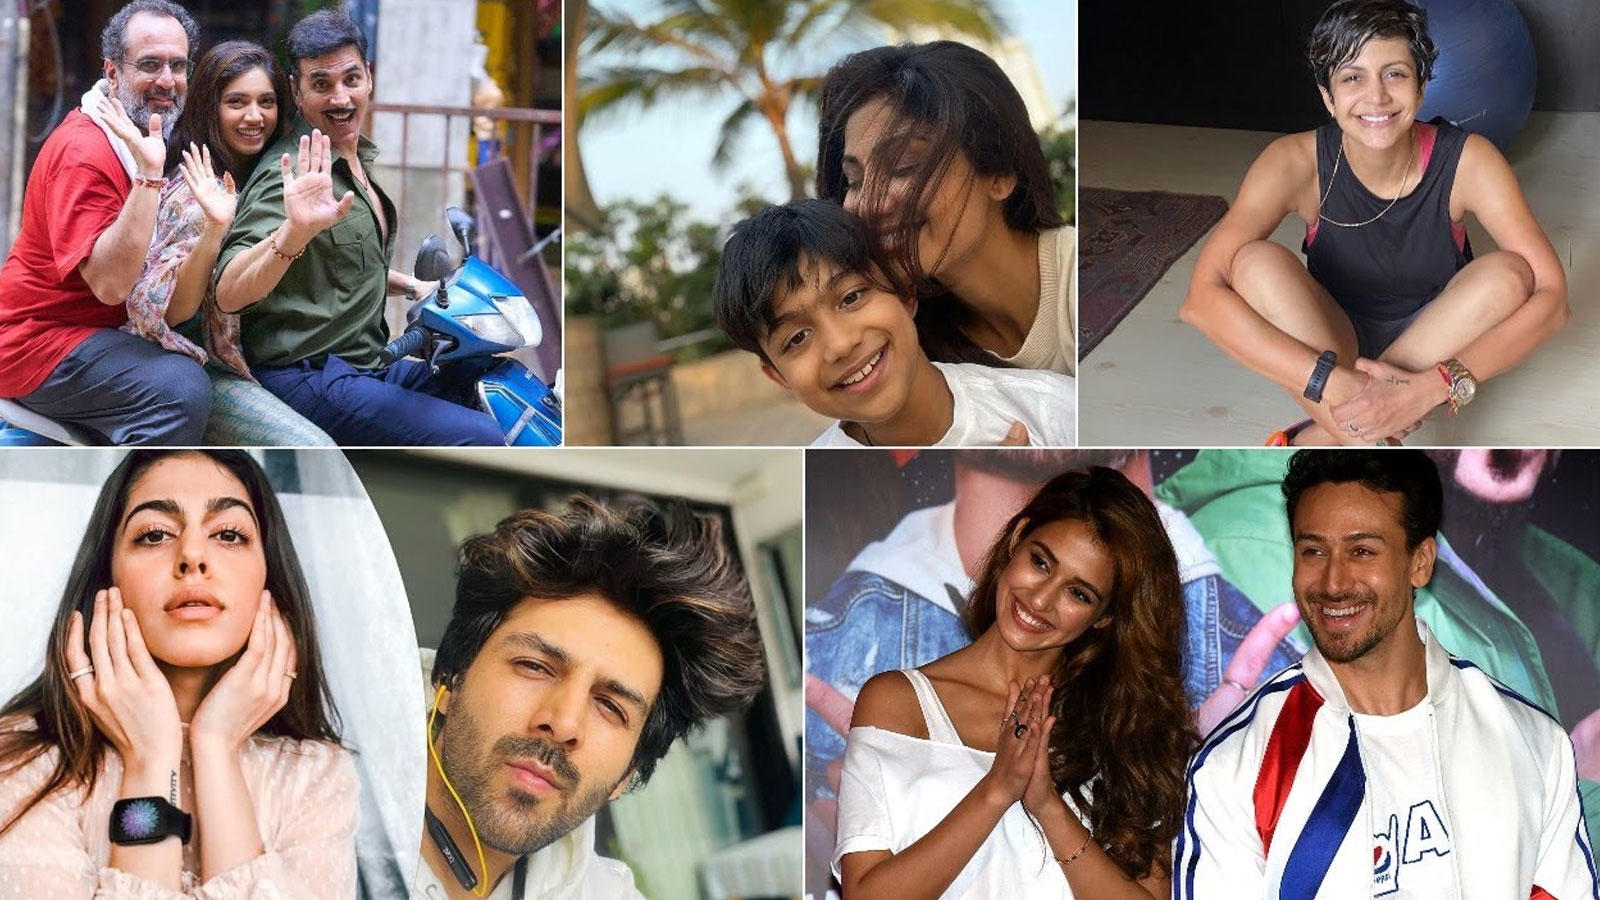 bolly-buzz-alaya-f-joins-kartik-aaryan-in-freddy-tiger-shroff-on-his-virginity-shilpa-shetty-viaans-happy-pictures